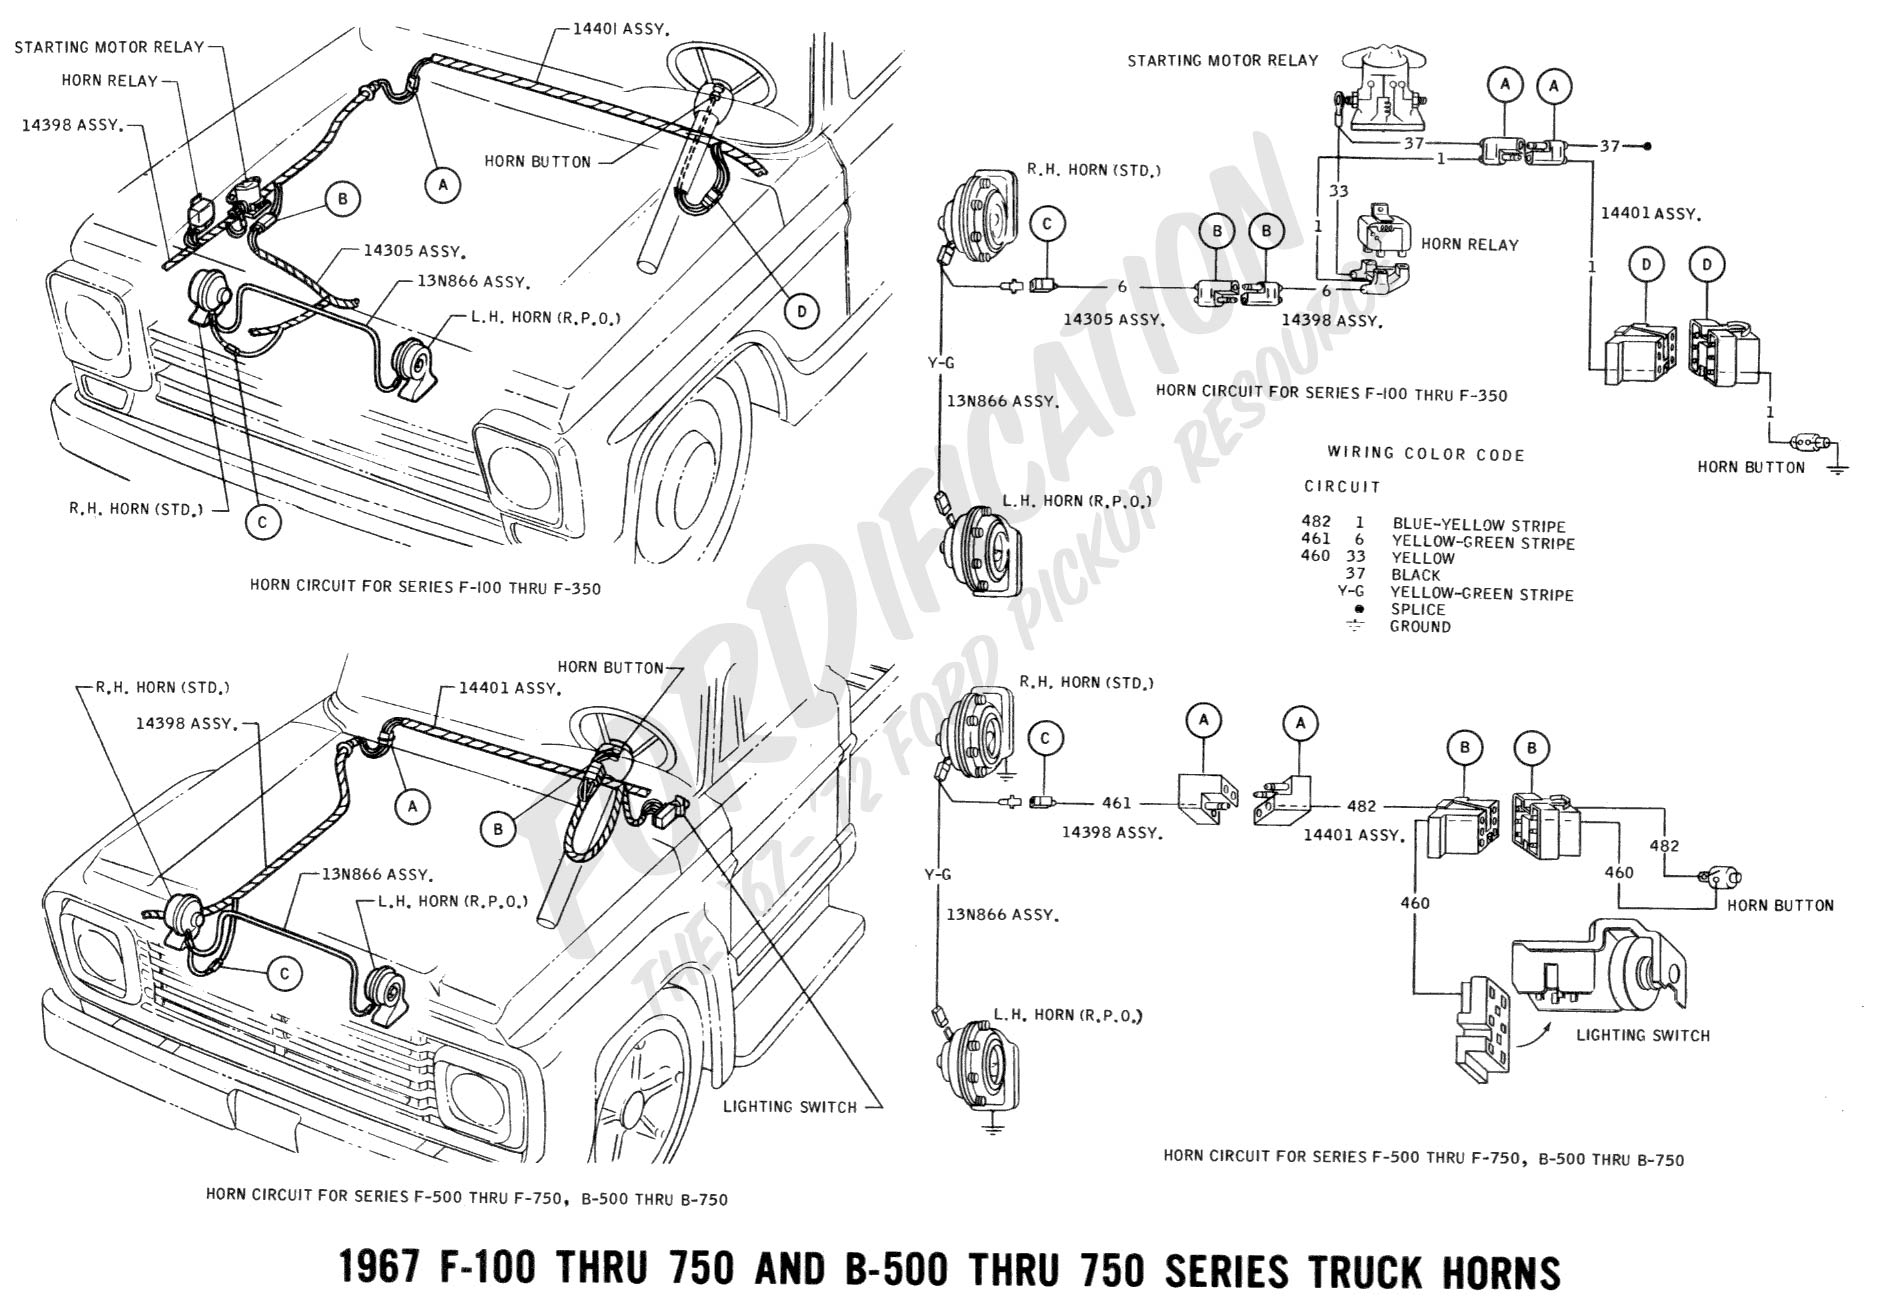 51 ford pickup wiring diagram html